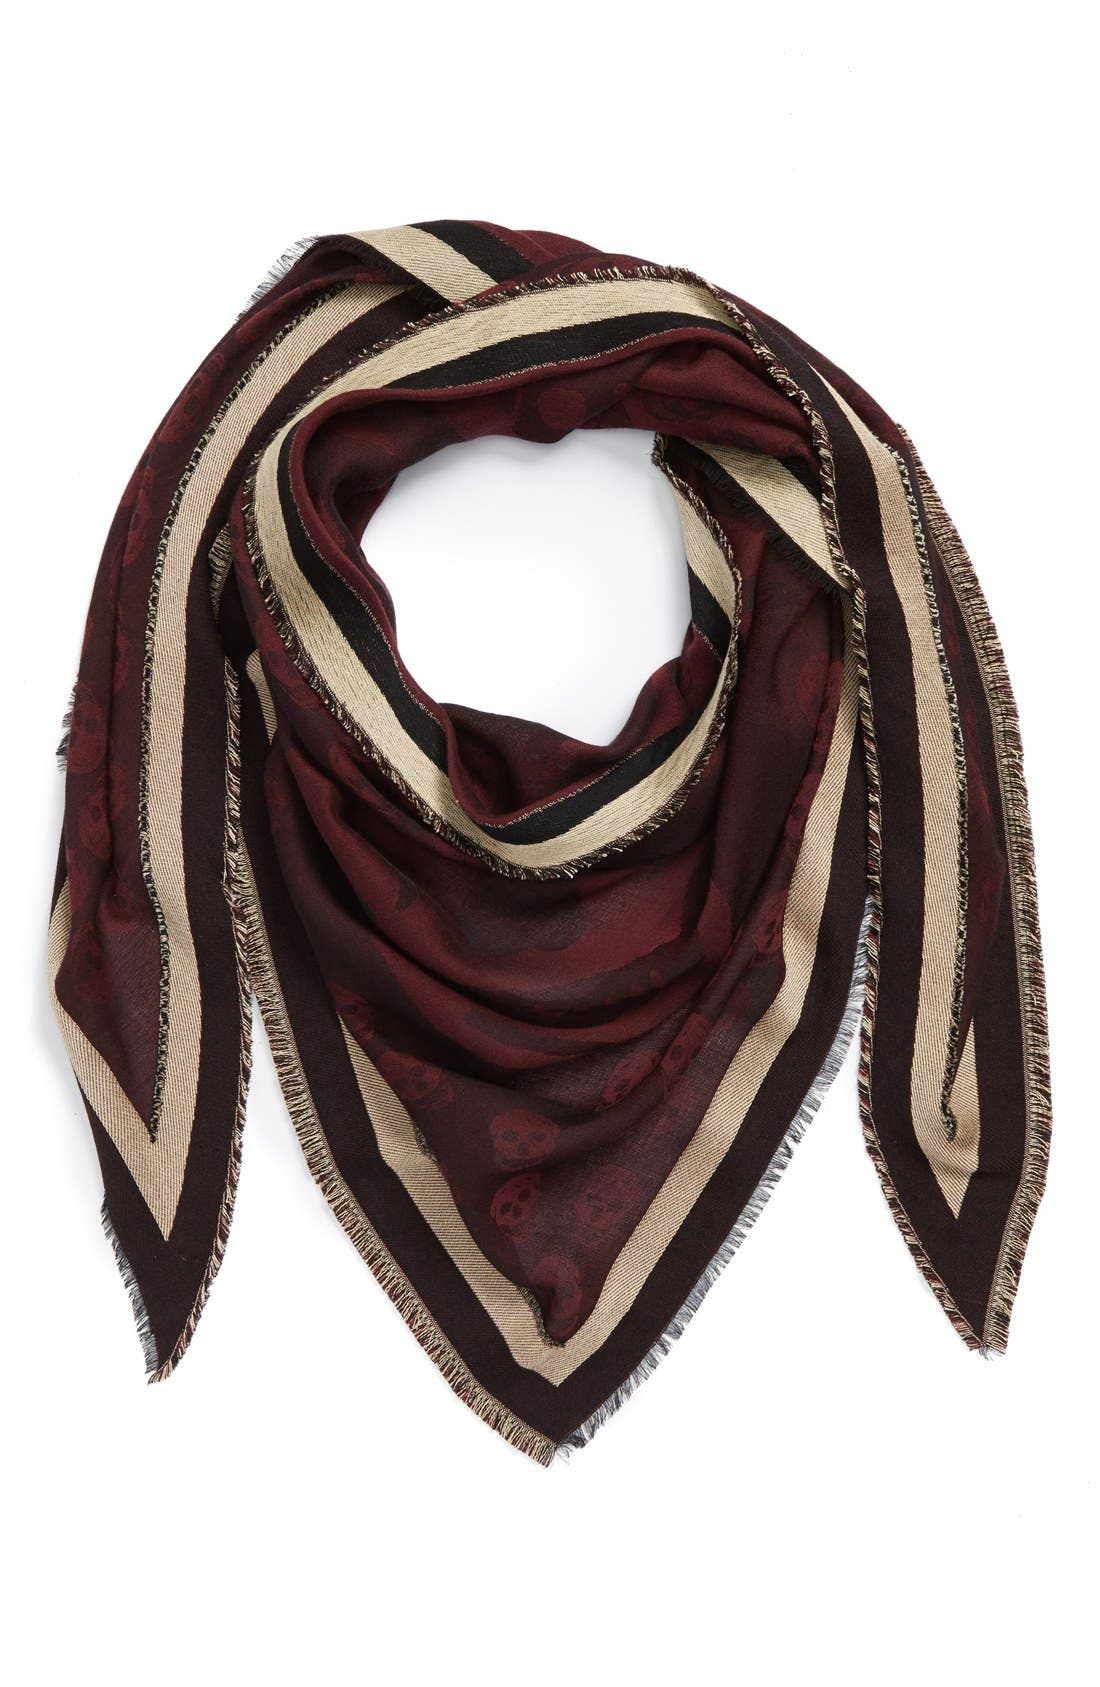 Alternate Image 1 Selected - Alexander McQueen Skull Print Triangle Scarf